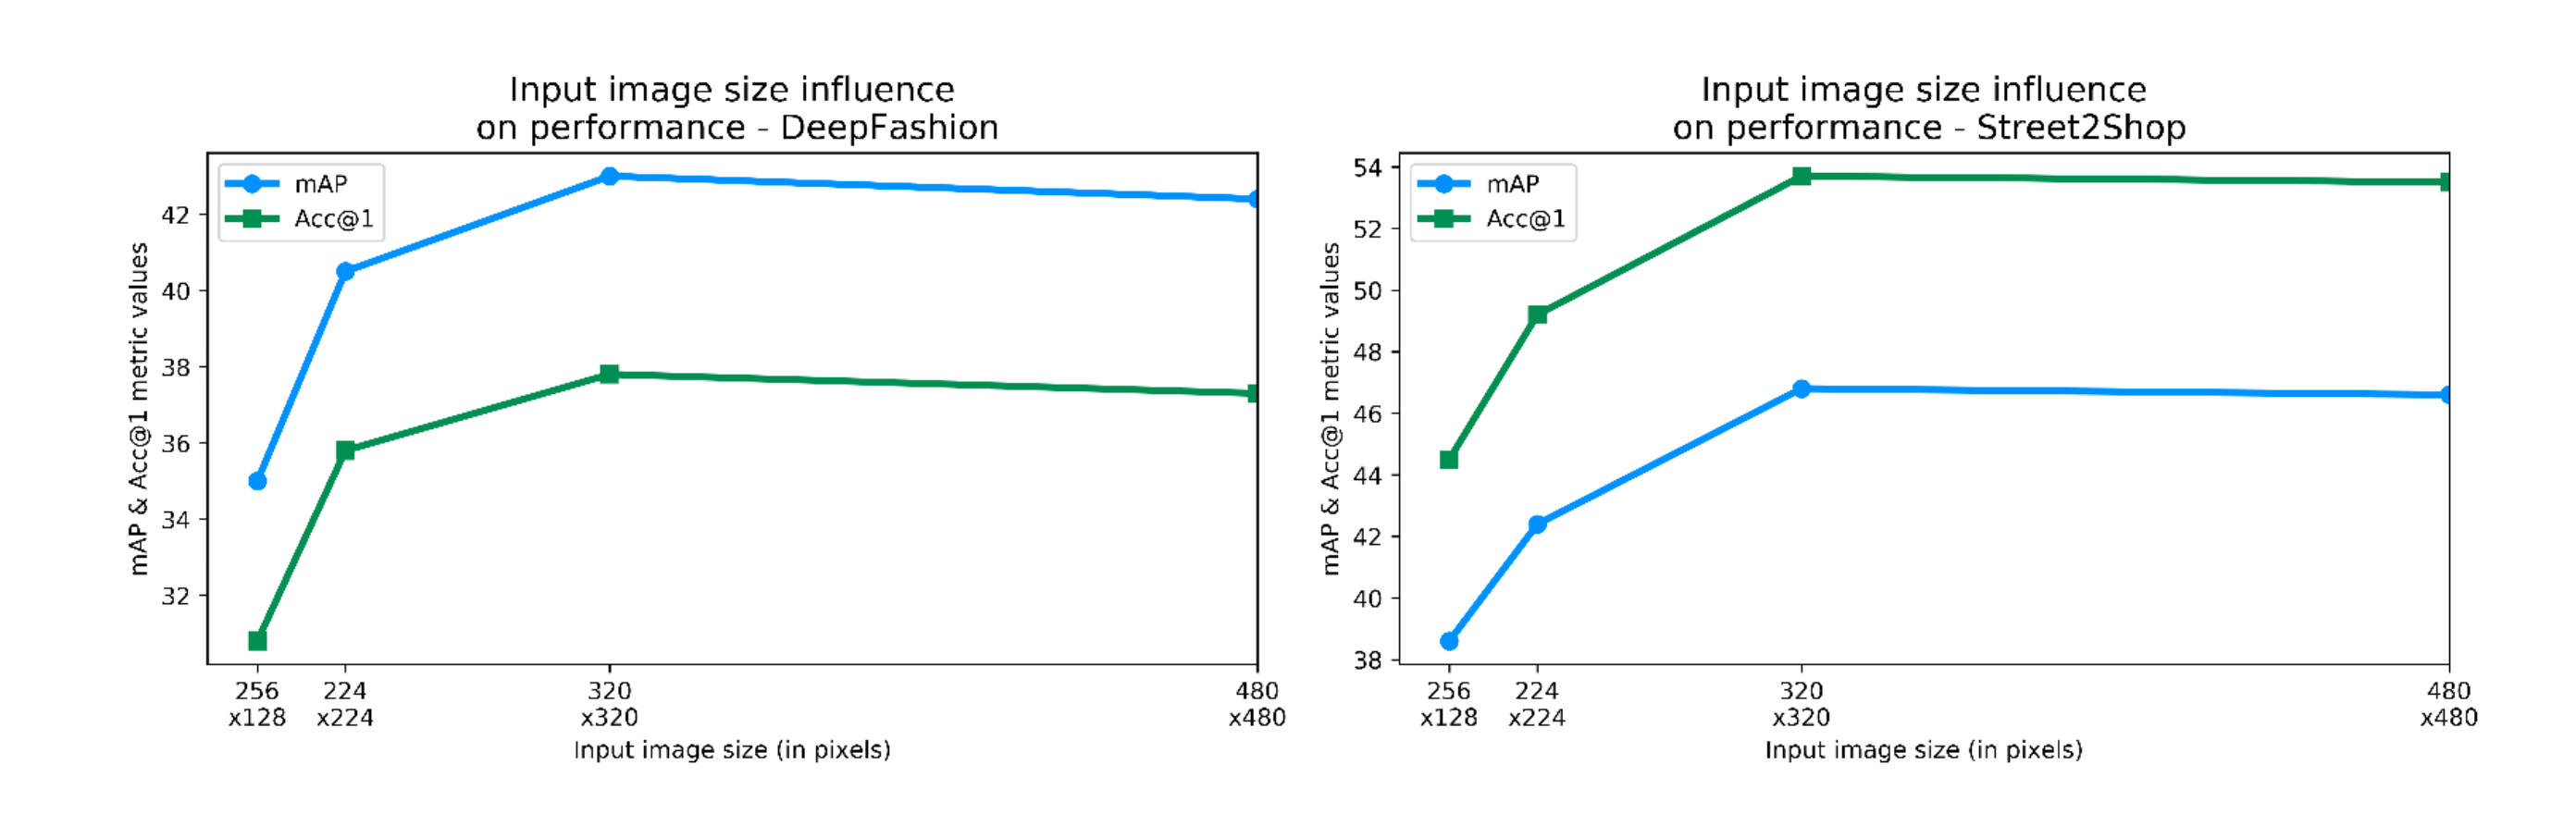 Two plots presenting influence of input image size on mAP and Acc@1 metric for DeepFashion and Street2Shop datasets